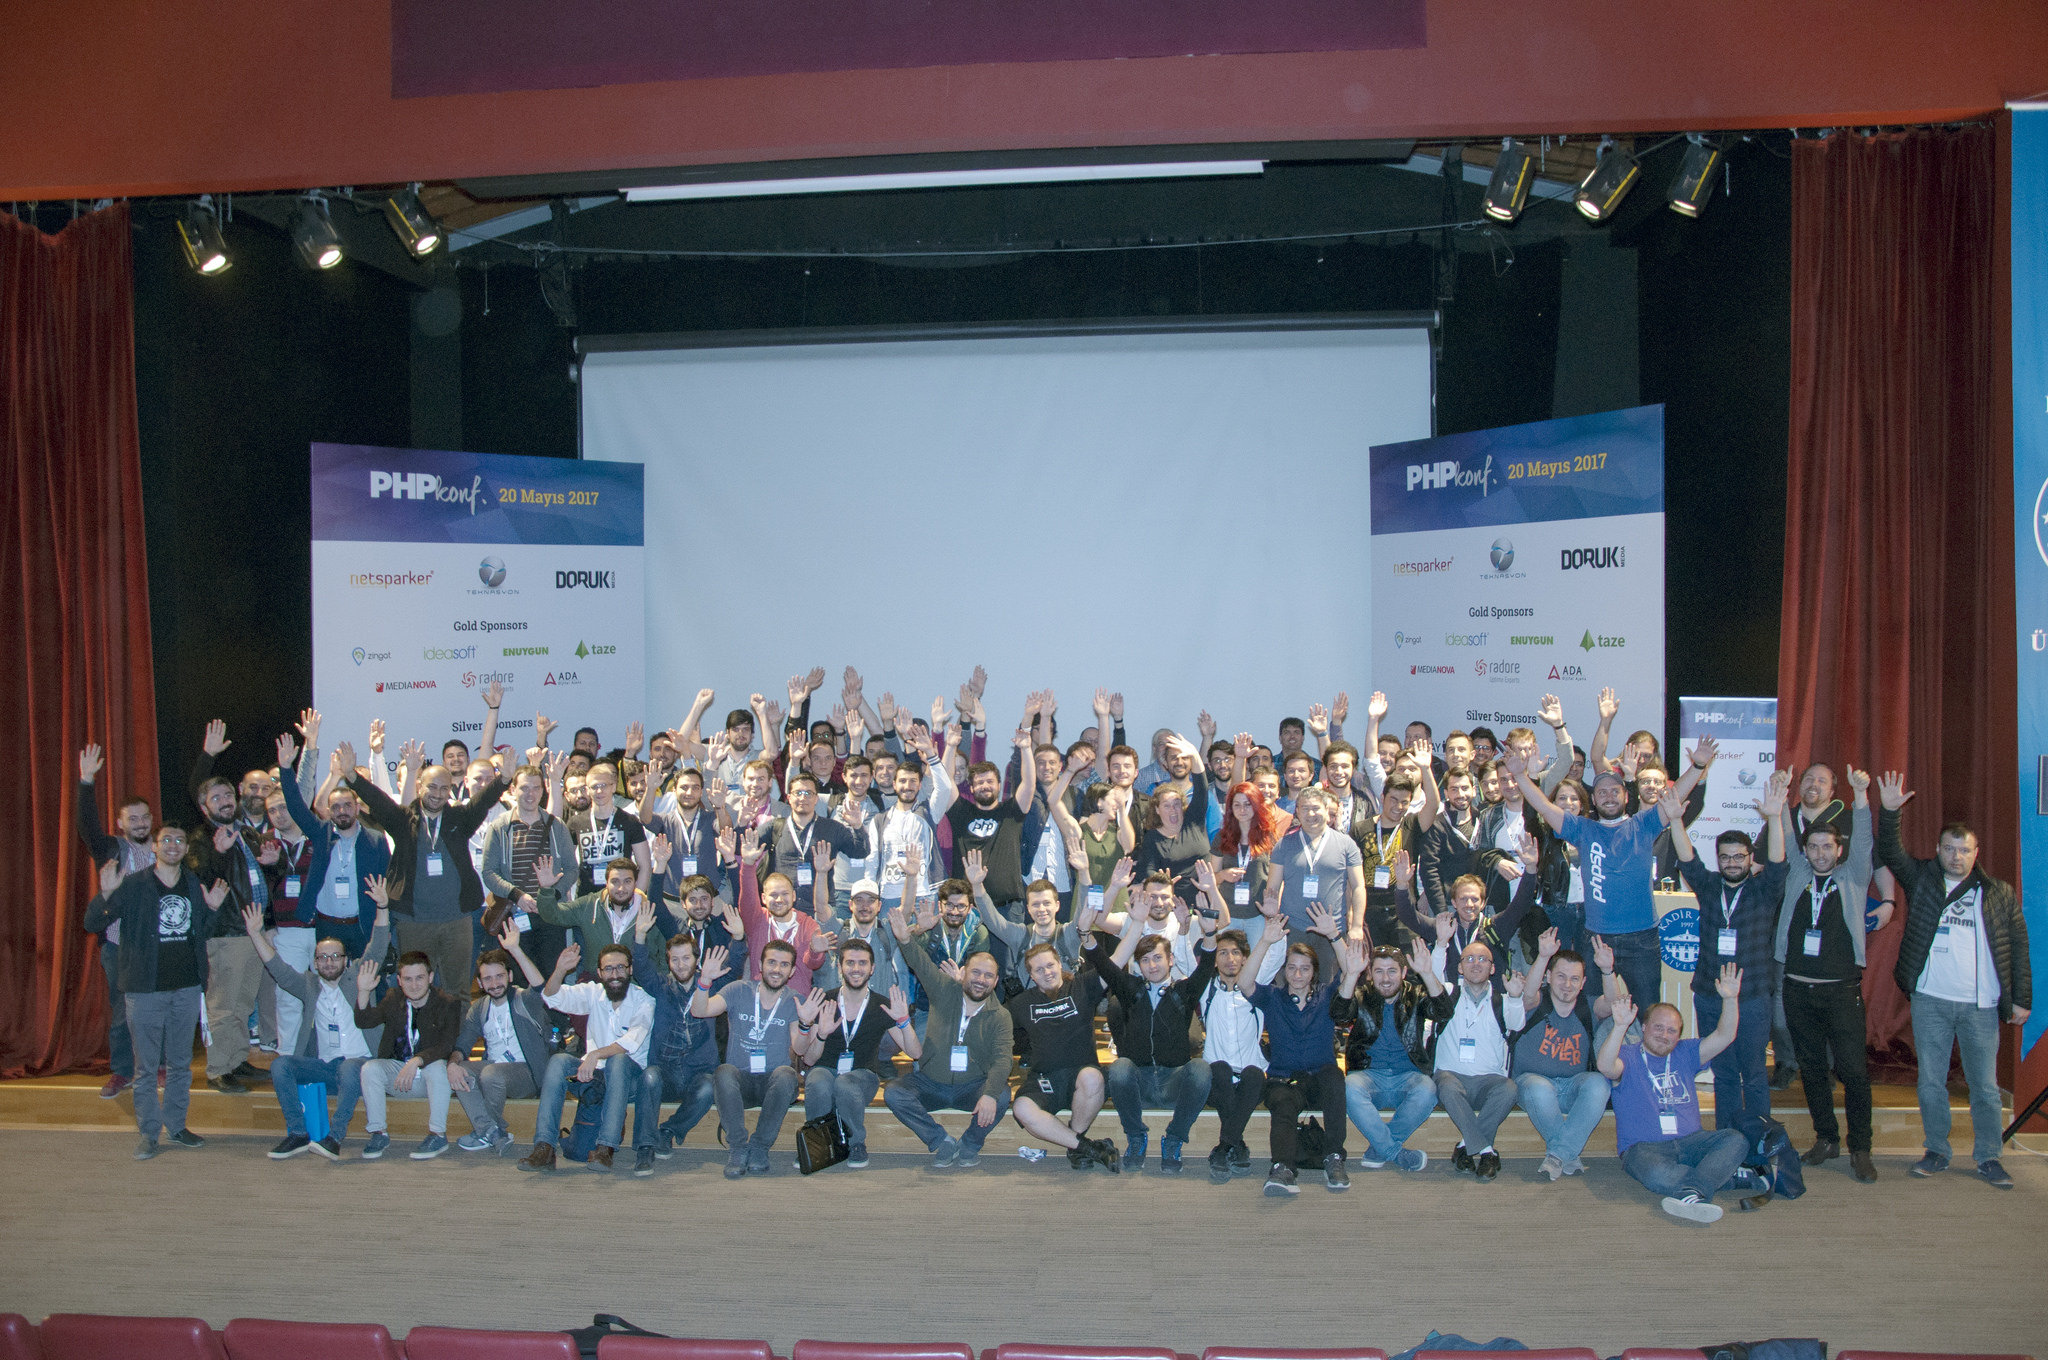 PhpKonf 2017